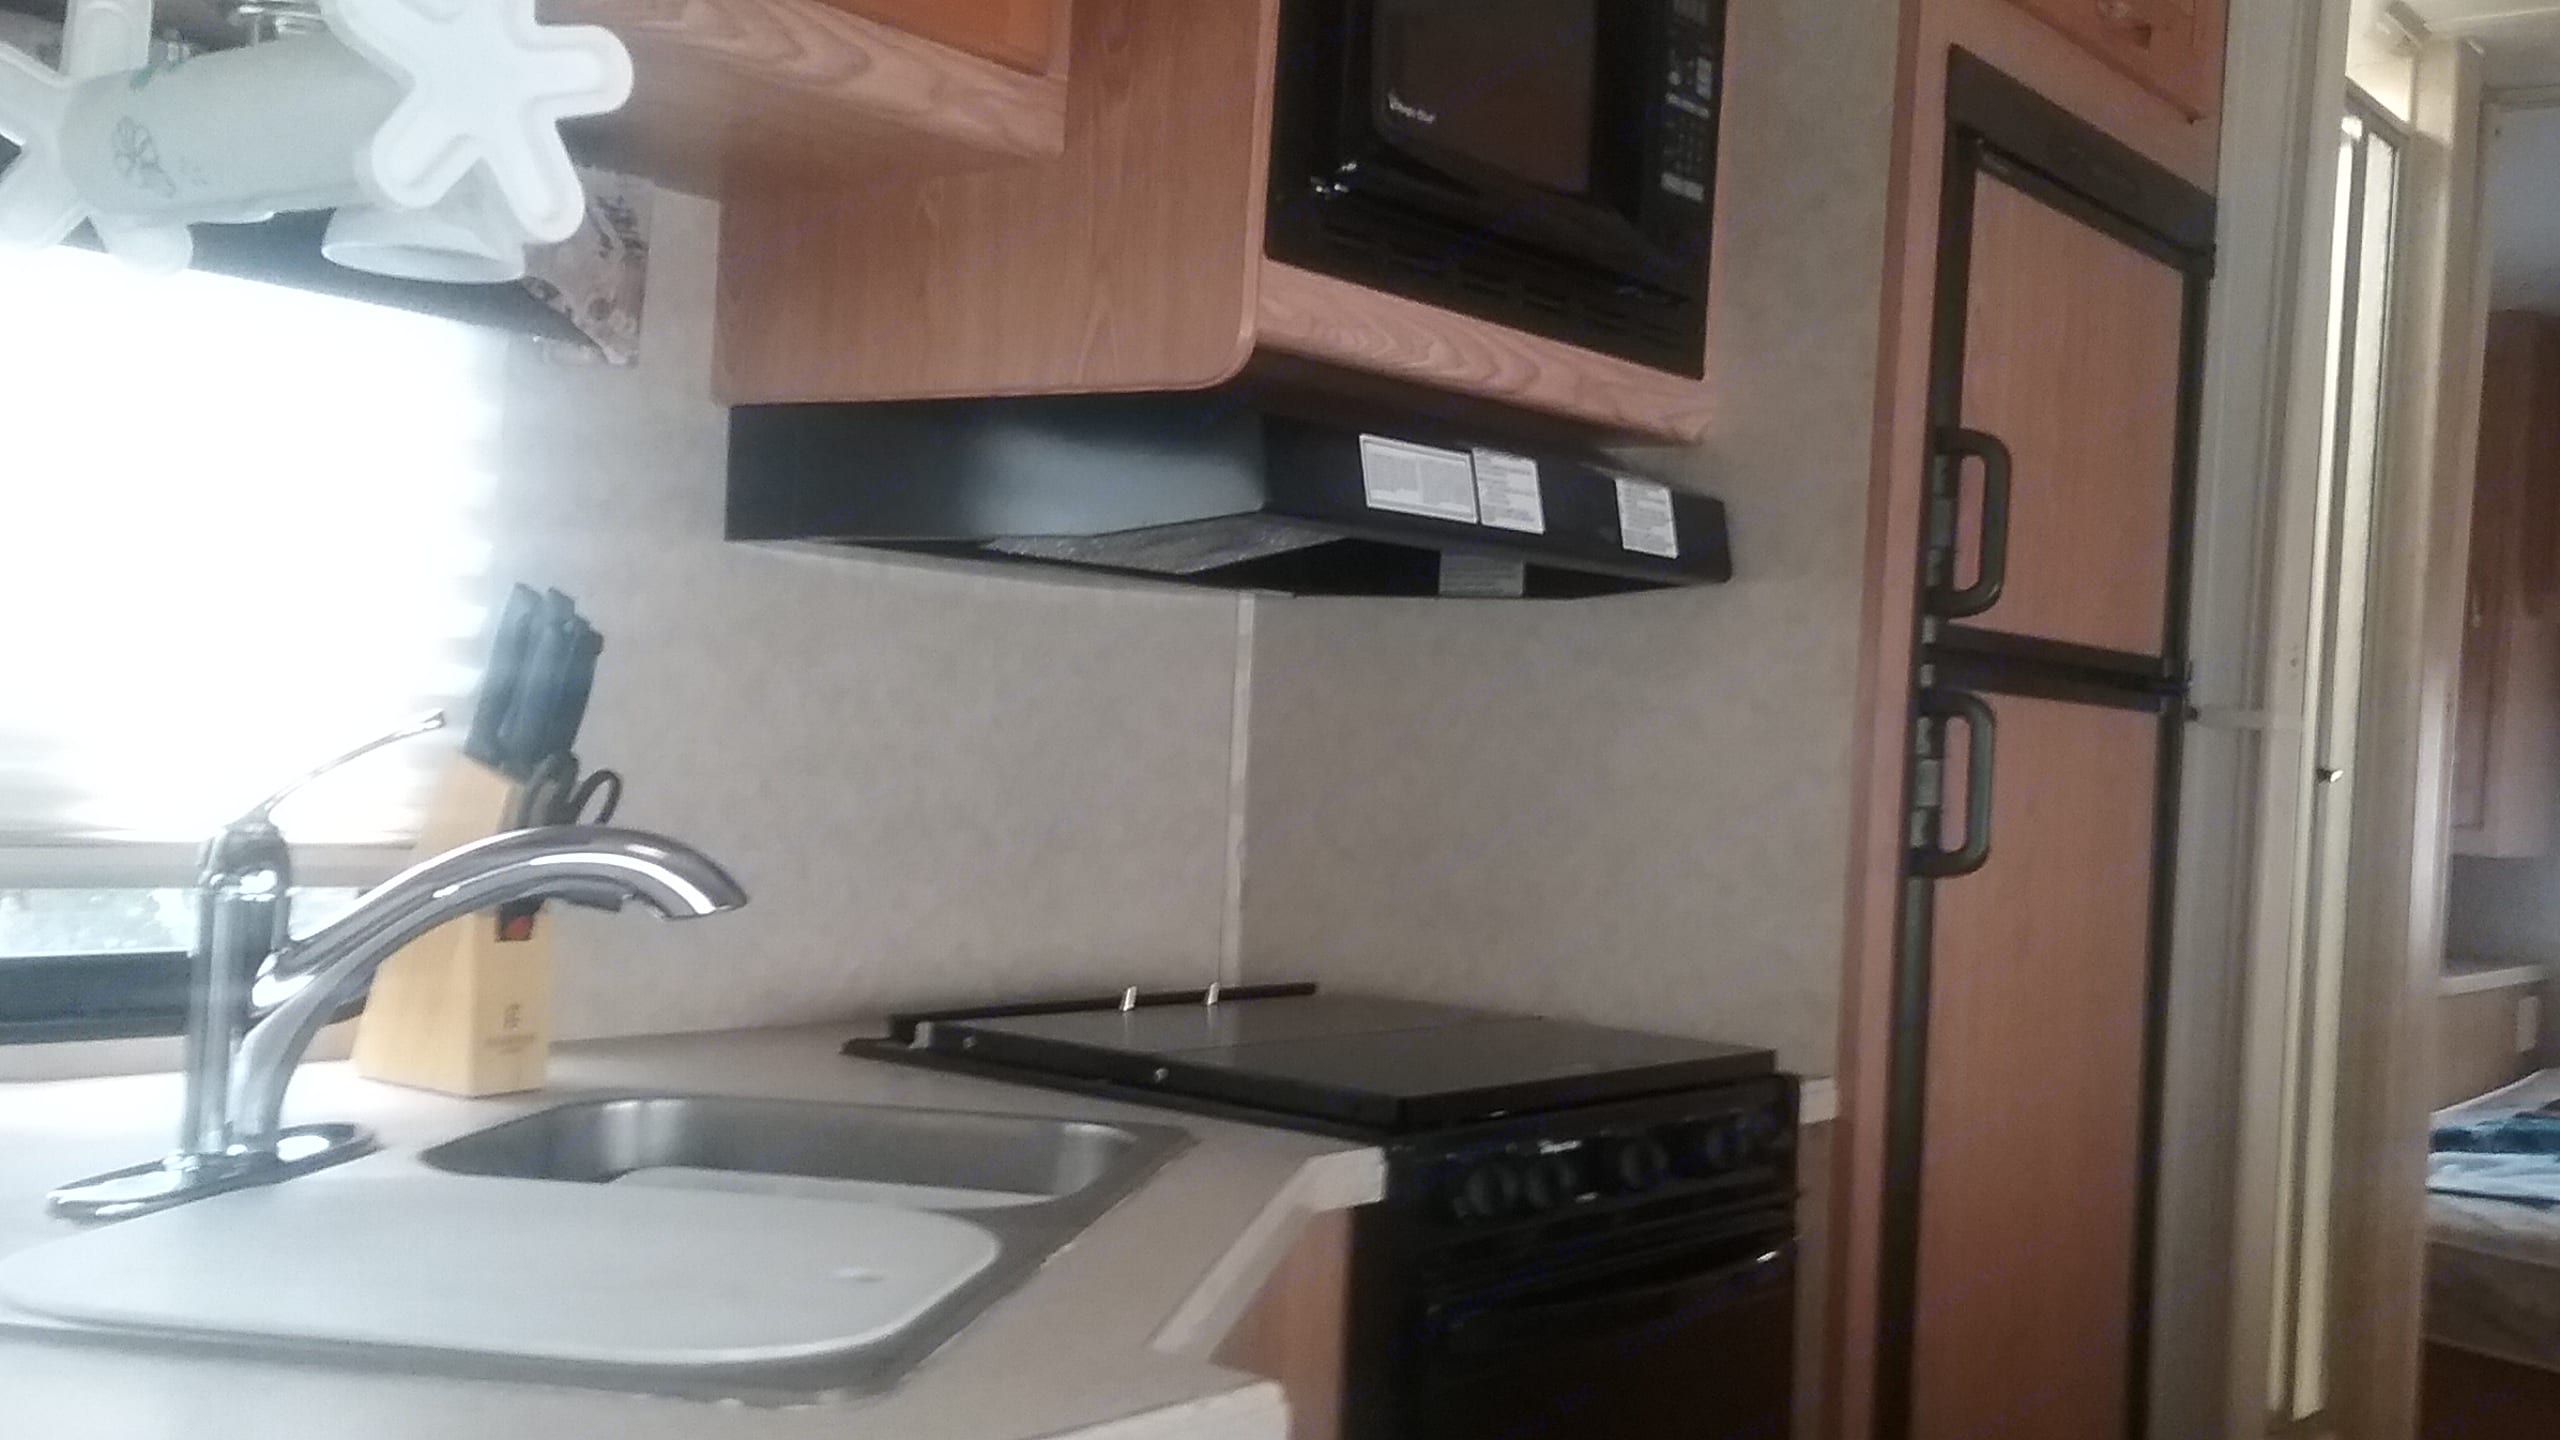 Kitchen area. Sink, stove, microwave, refrigerator,. Forest River Sunseeker 2006